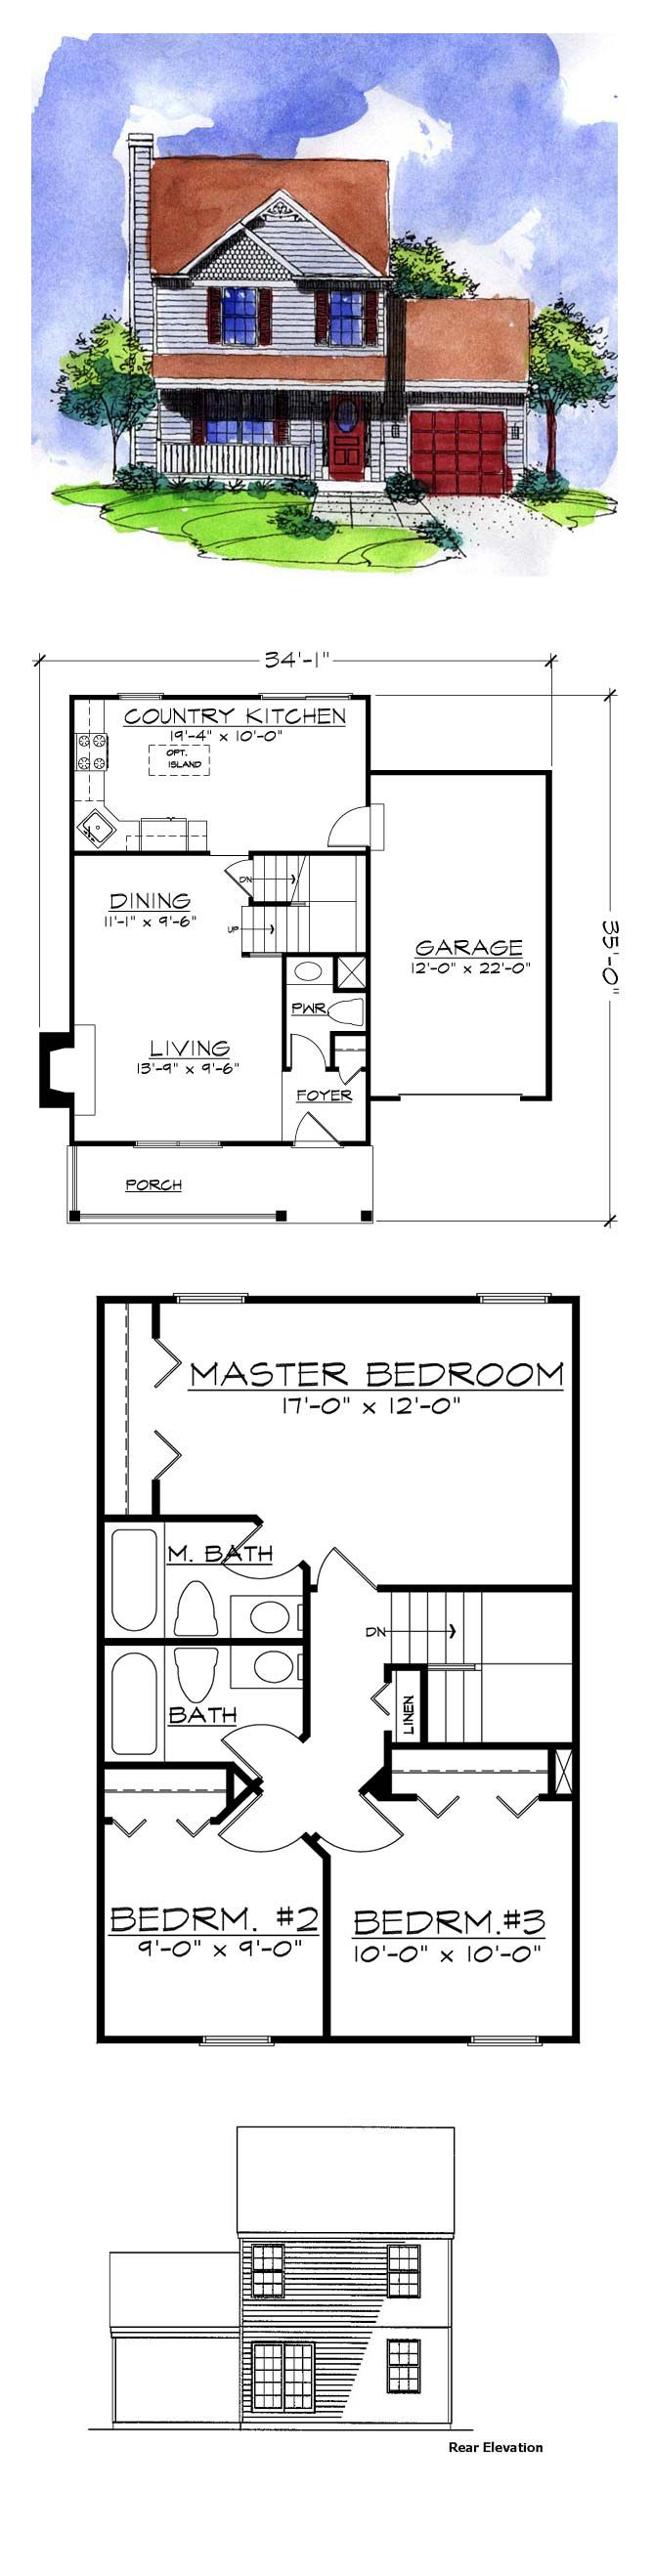 the 25 best narrow lot house plans ideas on pinterest narrow the 25 best narrow lot house plans ideas on pinterest narrow house plans small home plans and retirement house plans